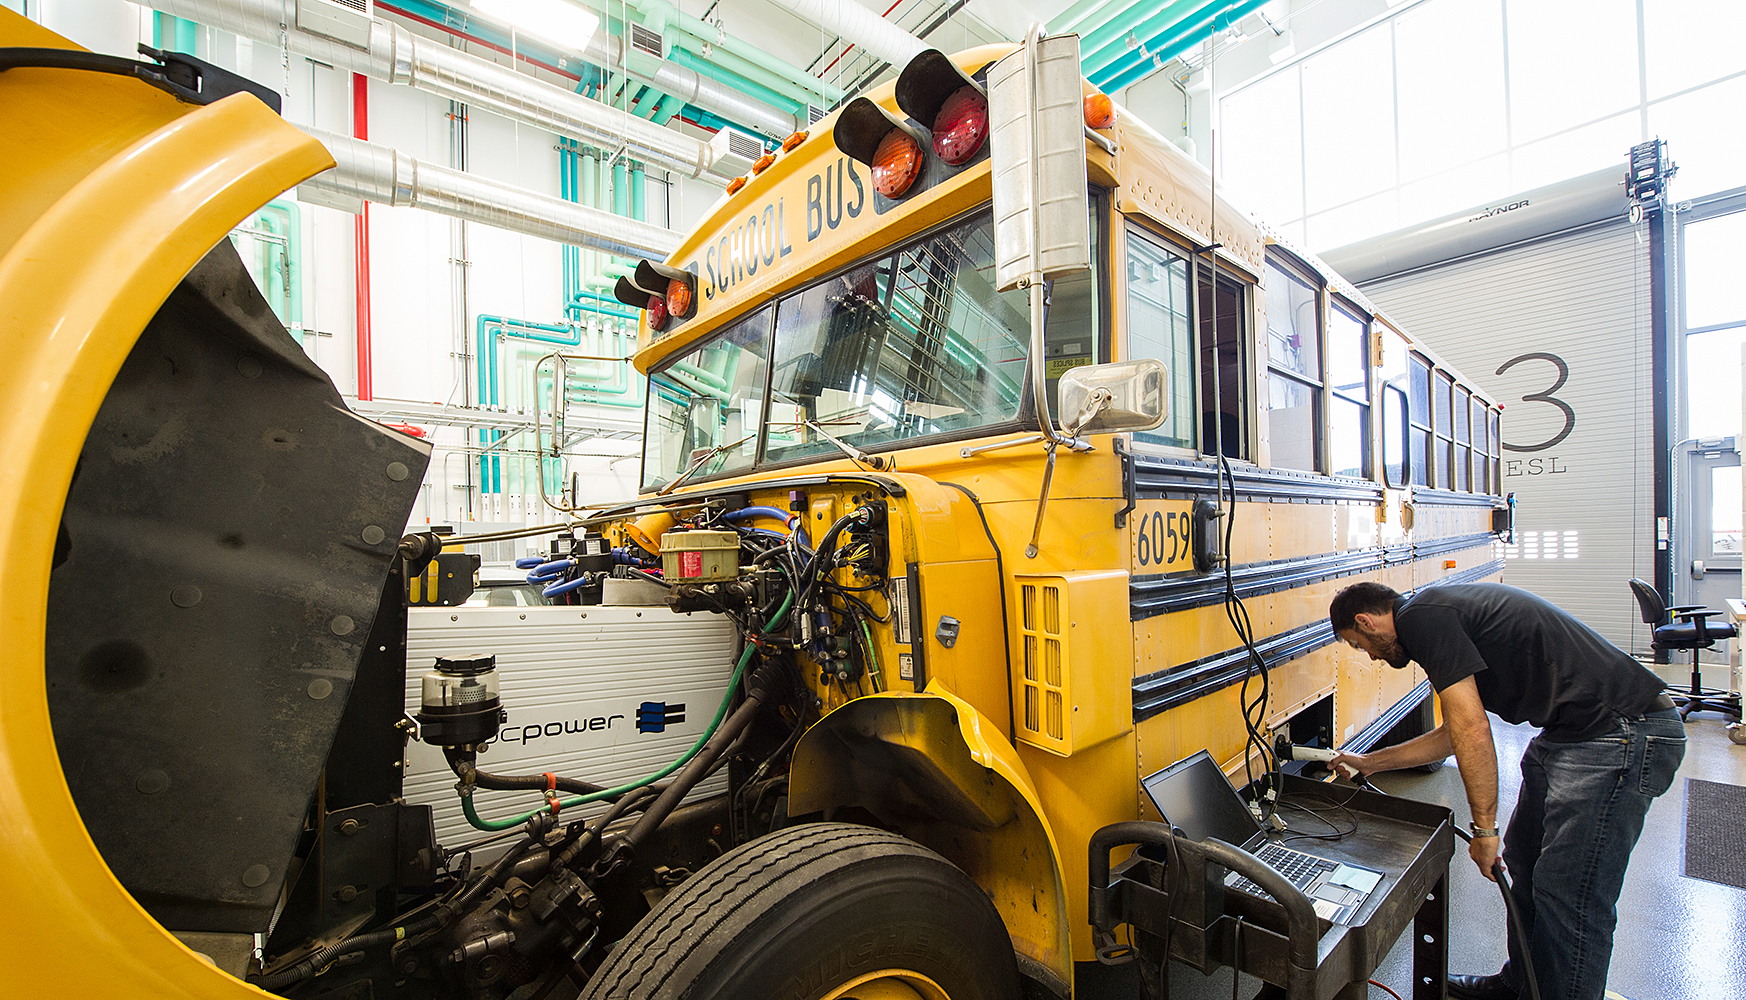 Electric school bus under study at the Energy Storage Lab at NREL's Energy Systems Integration Facility, featuring vehilce-to-grid integration capabilities enabling it to feed power back to the grid and essentially serve as a mobil power generator.